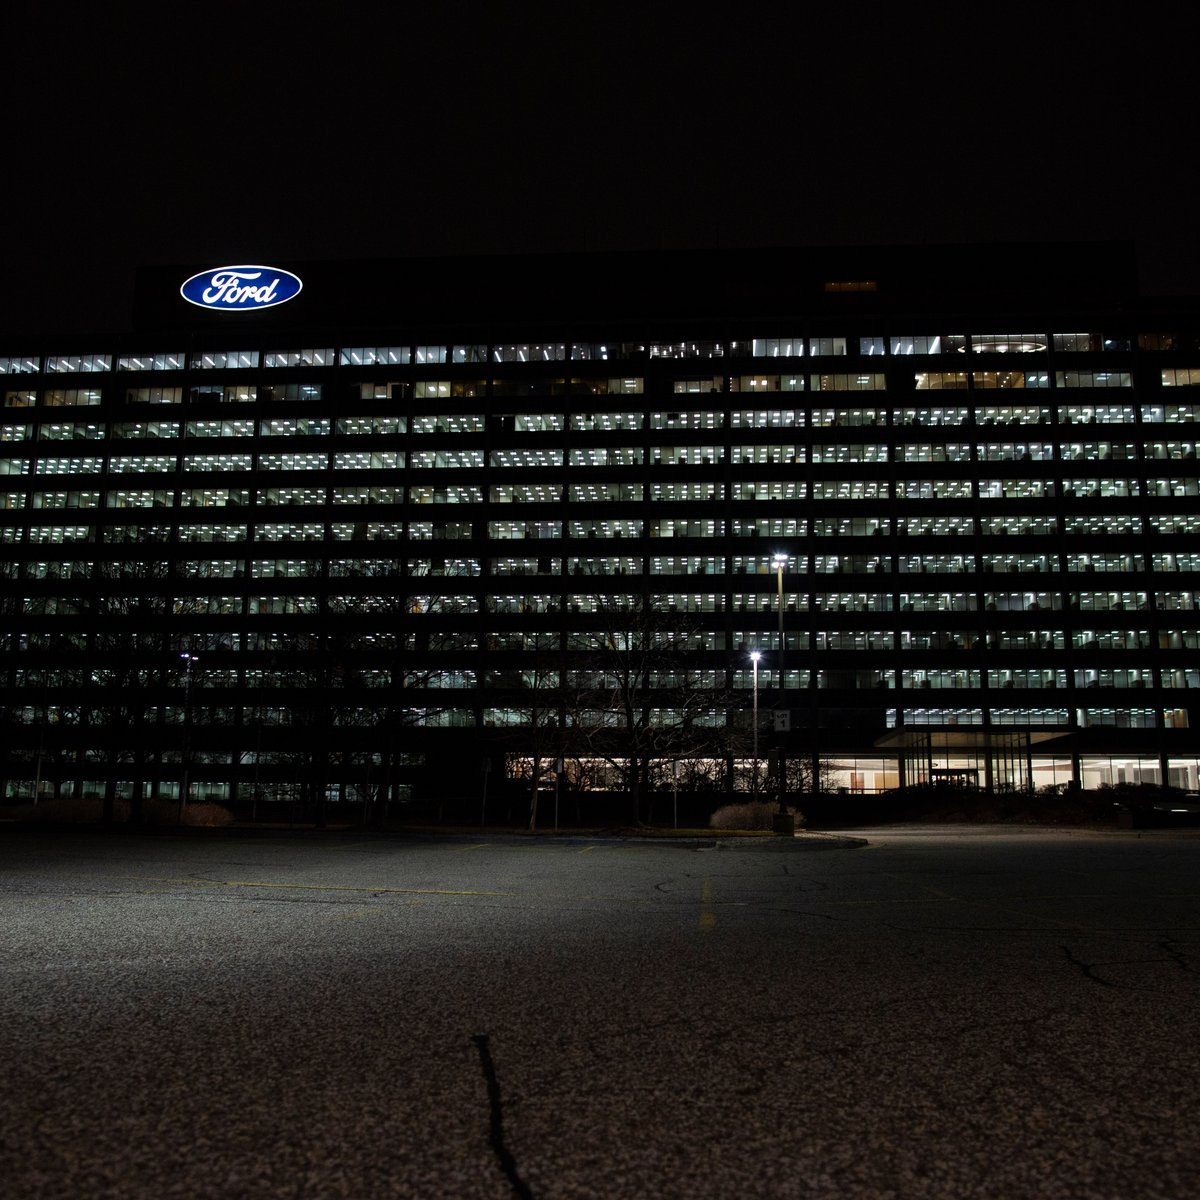 Tonight, we illuminated our World Headquarters & the historic Michigan Central Station in honor of those who lost their lives as a result of this pandemic.  Now is the time for us to unite to make a difference in our communities, help save lives & #FinishStrong. #COVIDMemorial